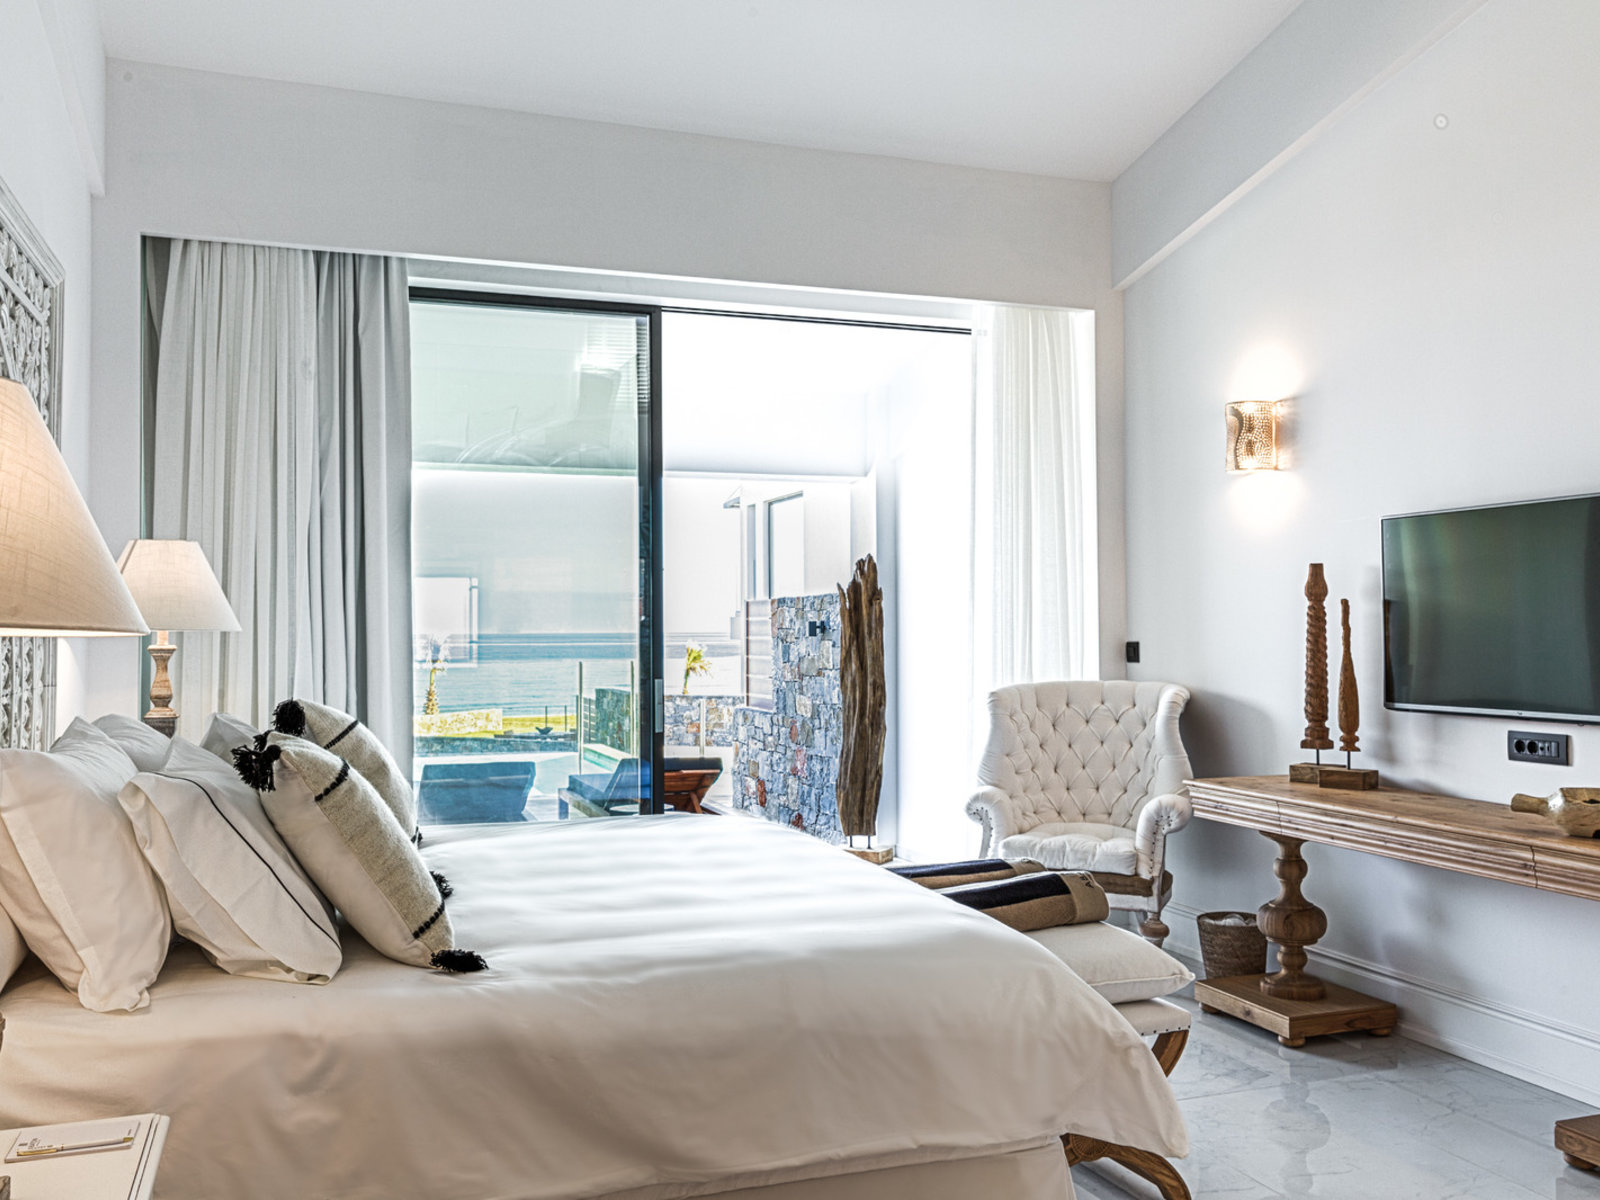 Wohnbeispiel LOFT LUXURY SEAFRONT GUESTROOM WITH PRIVATE POOL